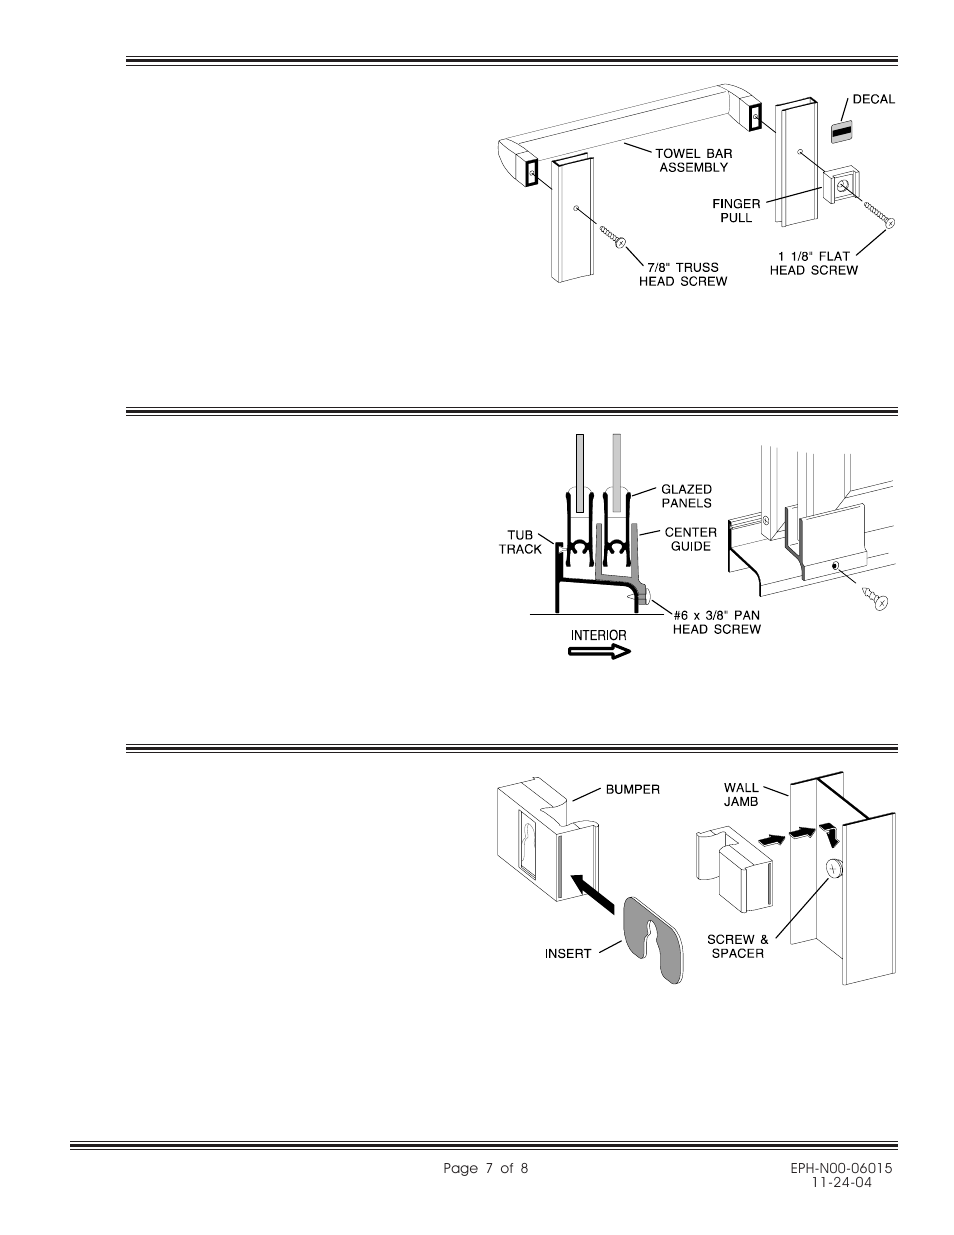 Alumax 650 User Manual | Page 7 / 8 | Also for: 640